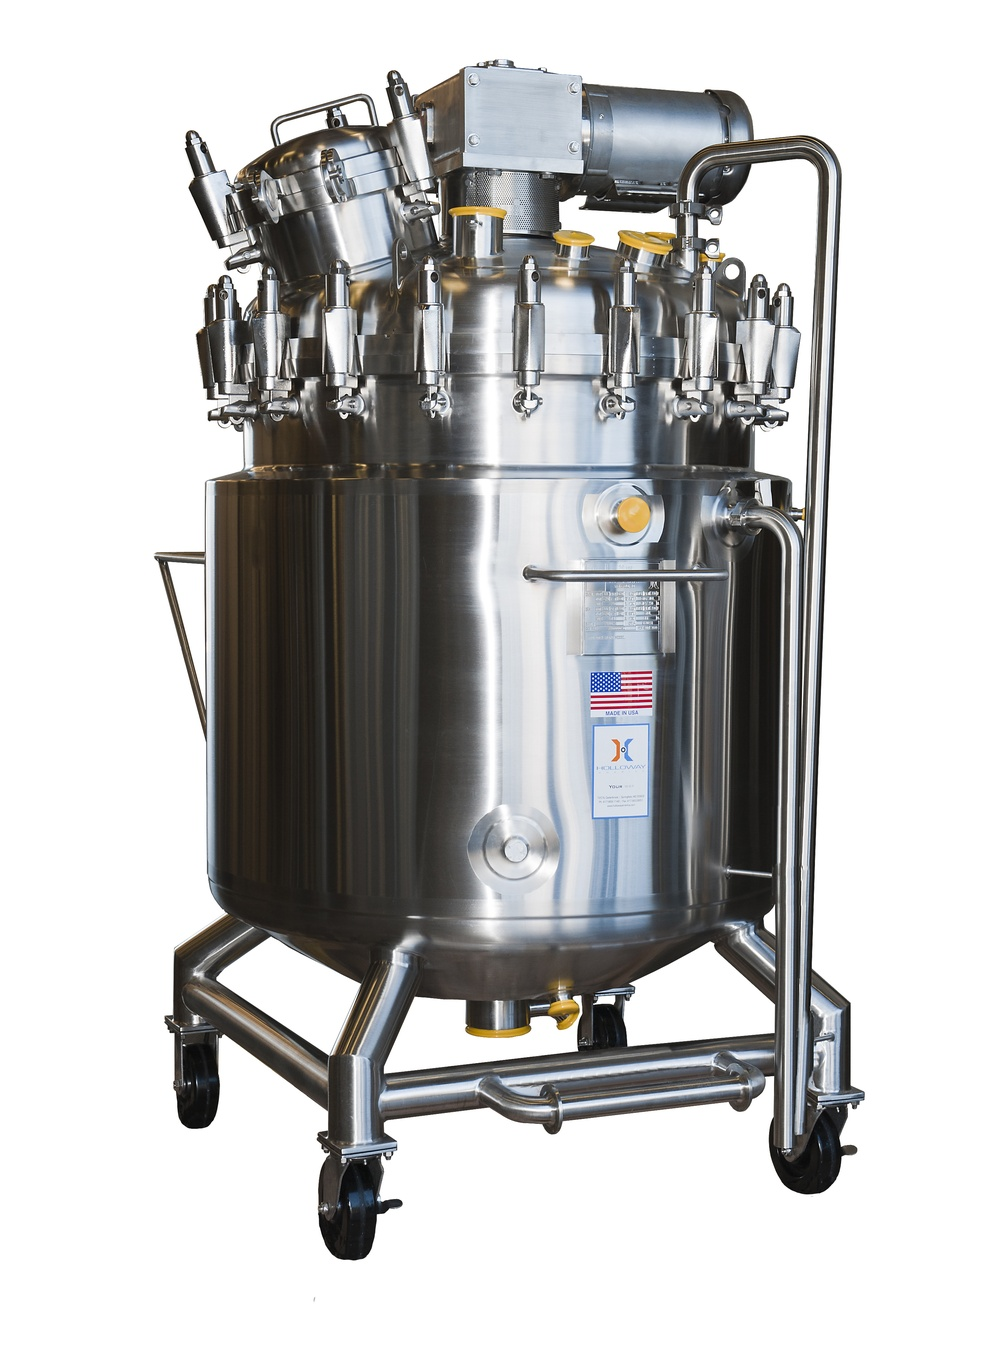 The mixing tank with portable mixing vessel design can come with a manway, like this.